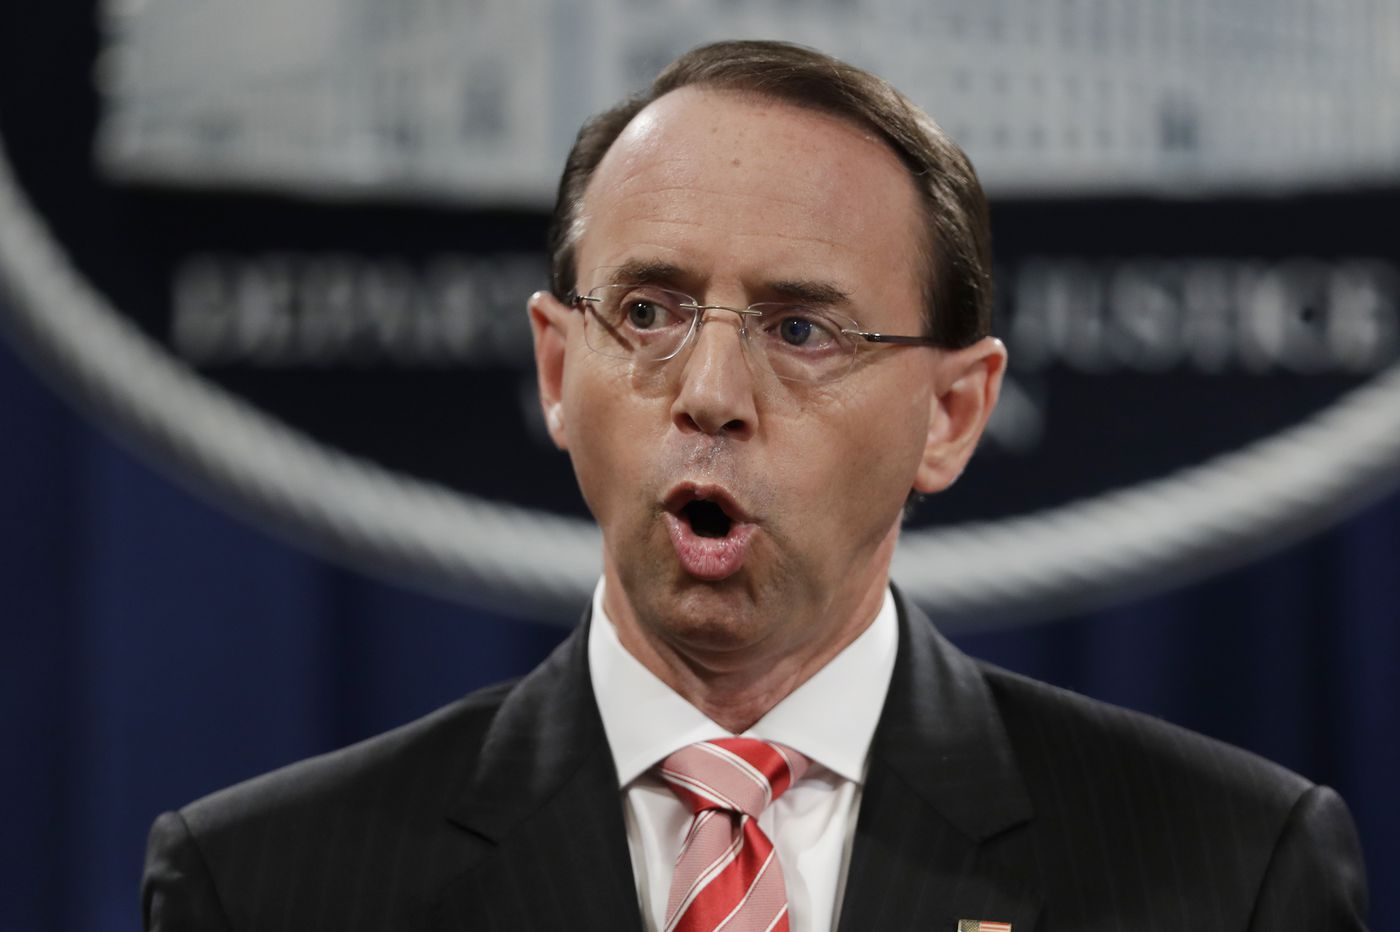 Rosenstein Ready to Leave Once Attorney General Confirmed, Source Says